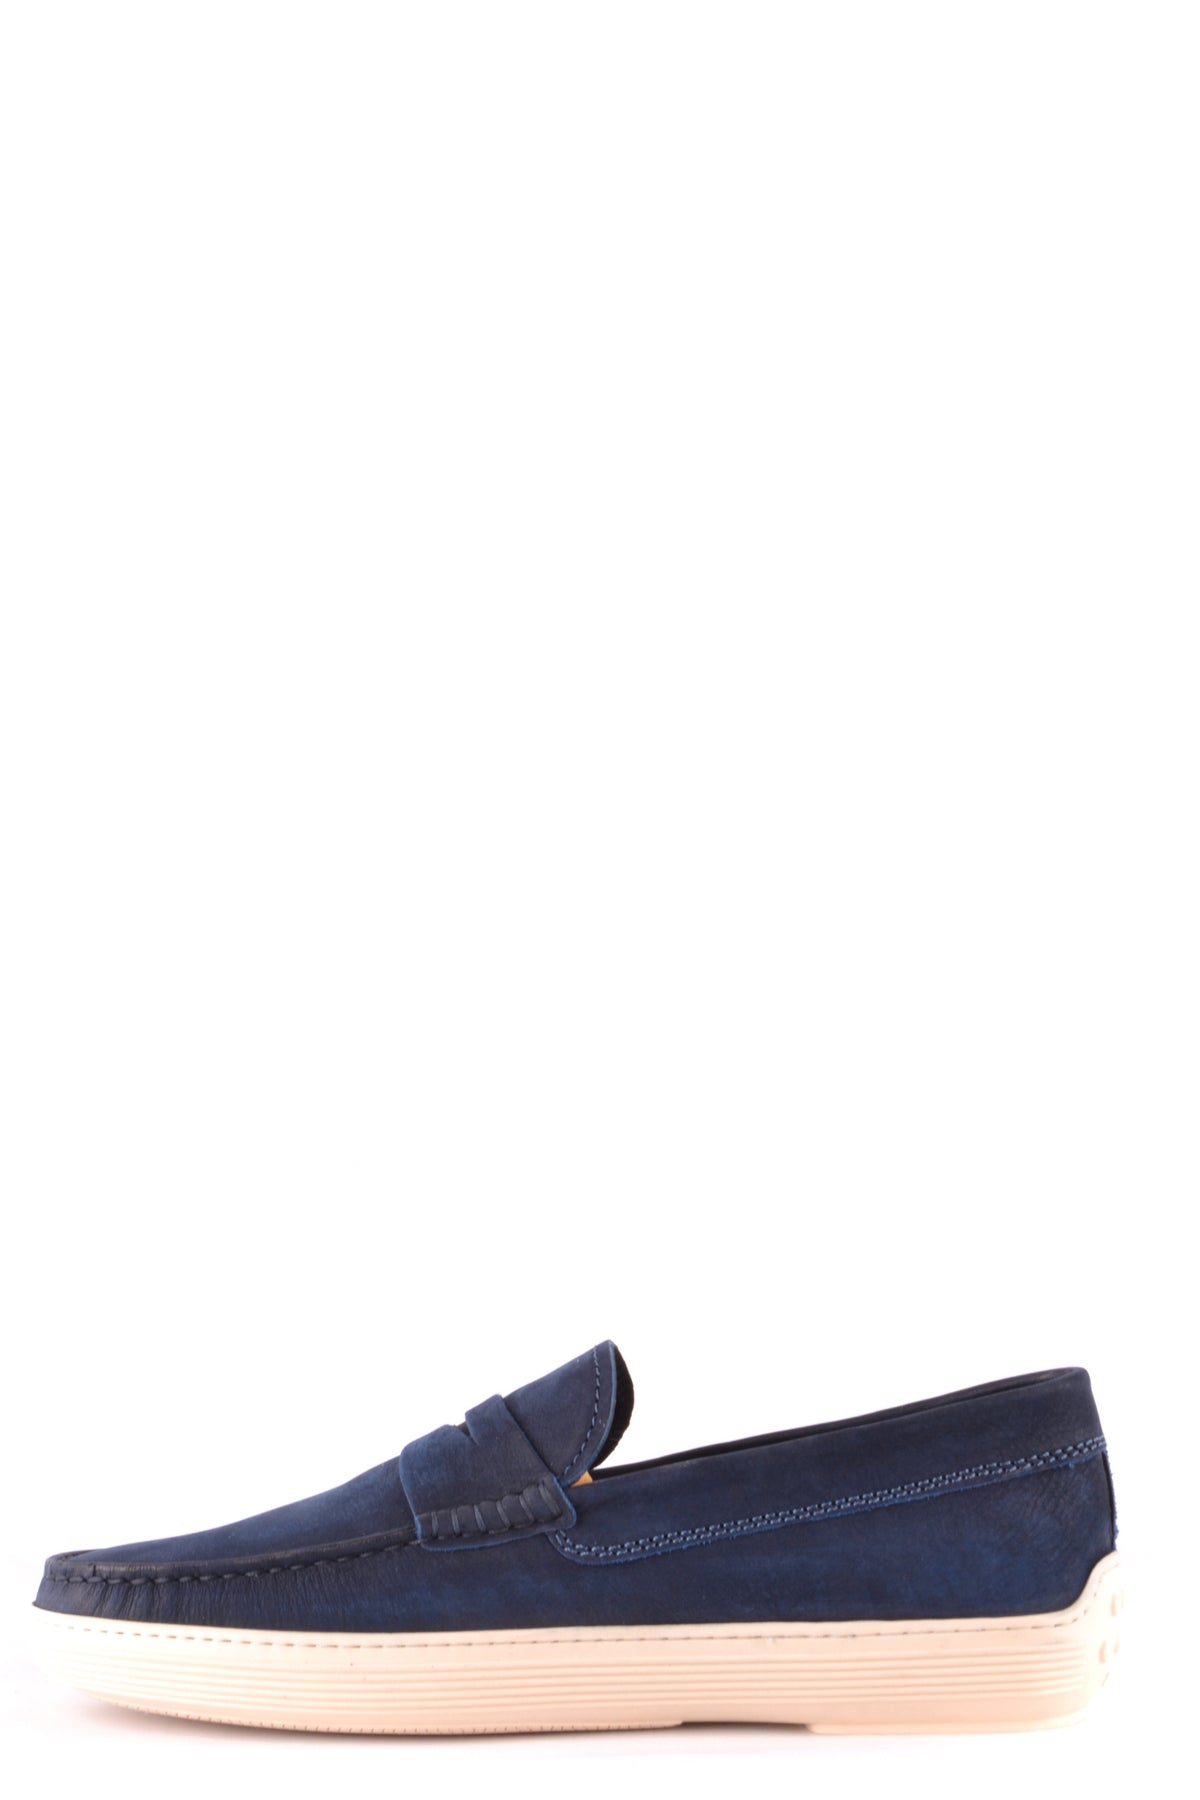 Shoes Tod'S-Moccasins - Shoes-Product Details Type Of Accessory: ShoesSeason: Spring / SummerTerms: New With LabelMain Color: BlueGender: ManMade In: ItalyManufacturer Part Number: Xxm0Yt00010Fl1U616Size: UkYear: 2018Composition: Suede 100%-Keyomi-Sook